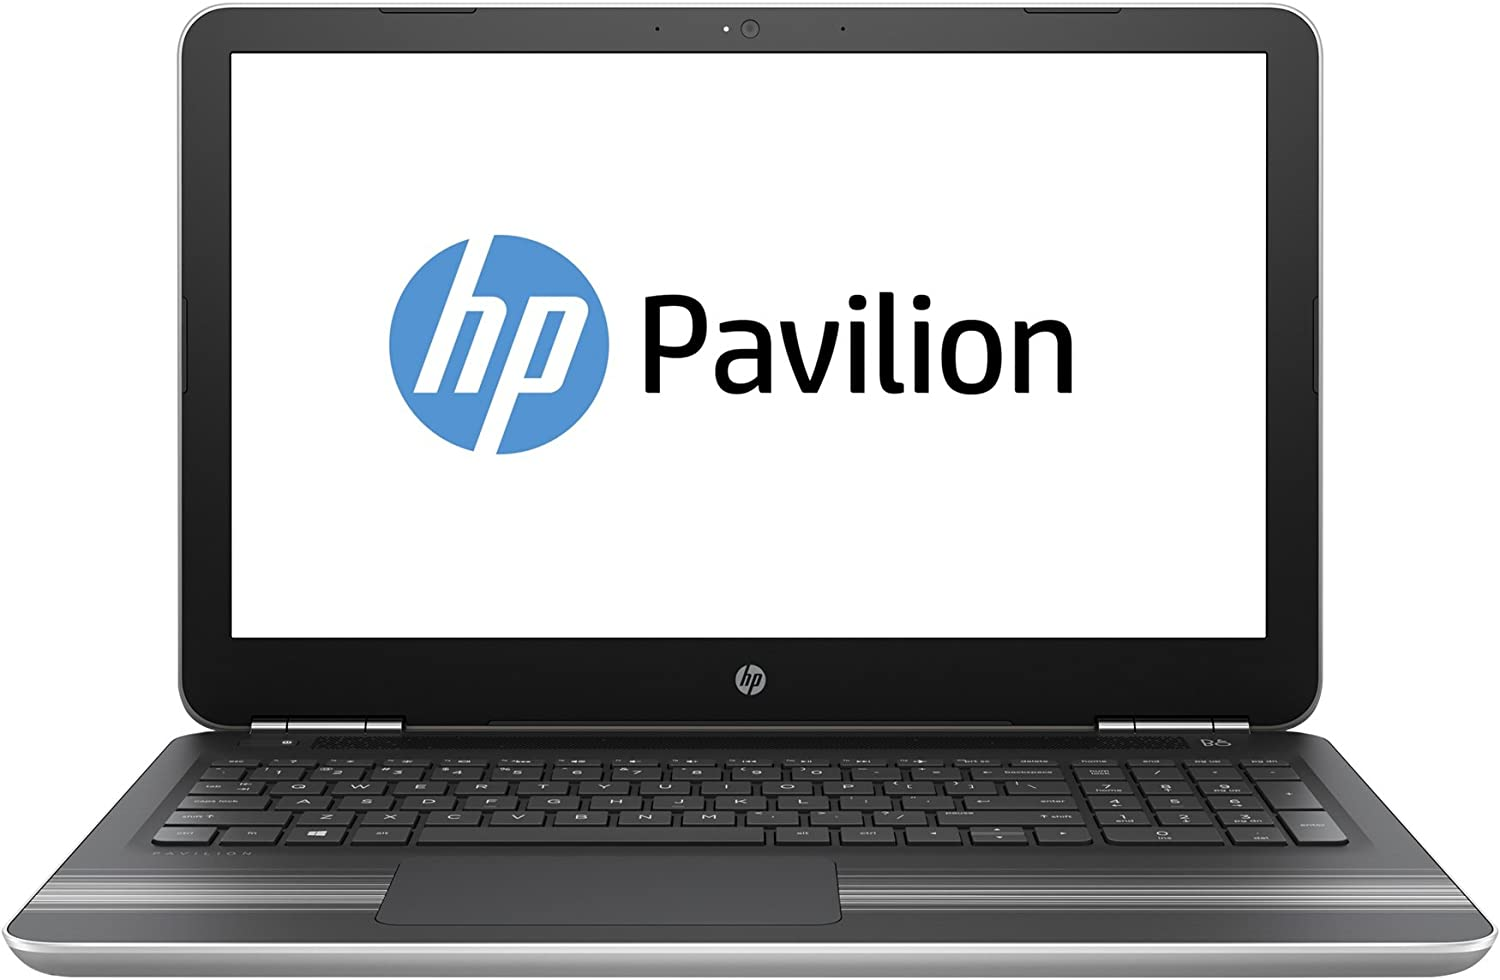 HP Pavilion 15-au010wm 15.6 Inch Laptop (Intel Core i7-6500U 2.5GHz, 12 GB DDR4-2133 SDRAM, 1 TB 5400 rpm SATA Hard Drive, Windows 10), Silver